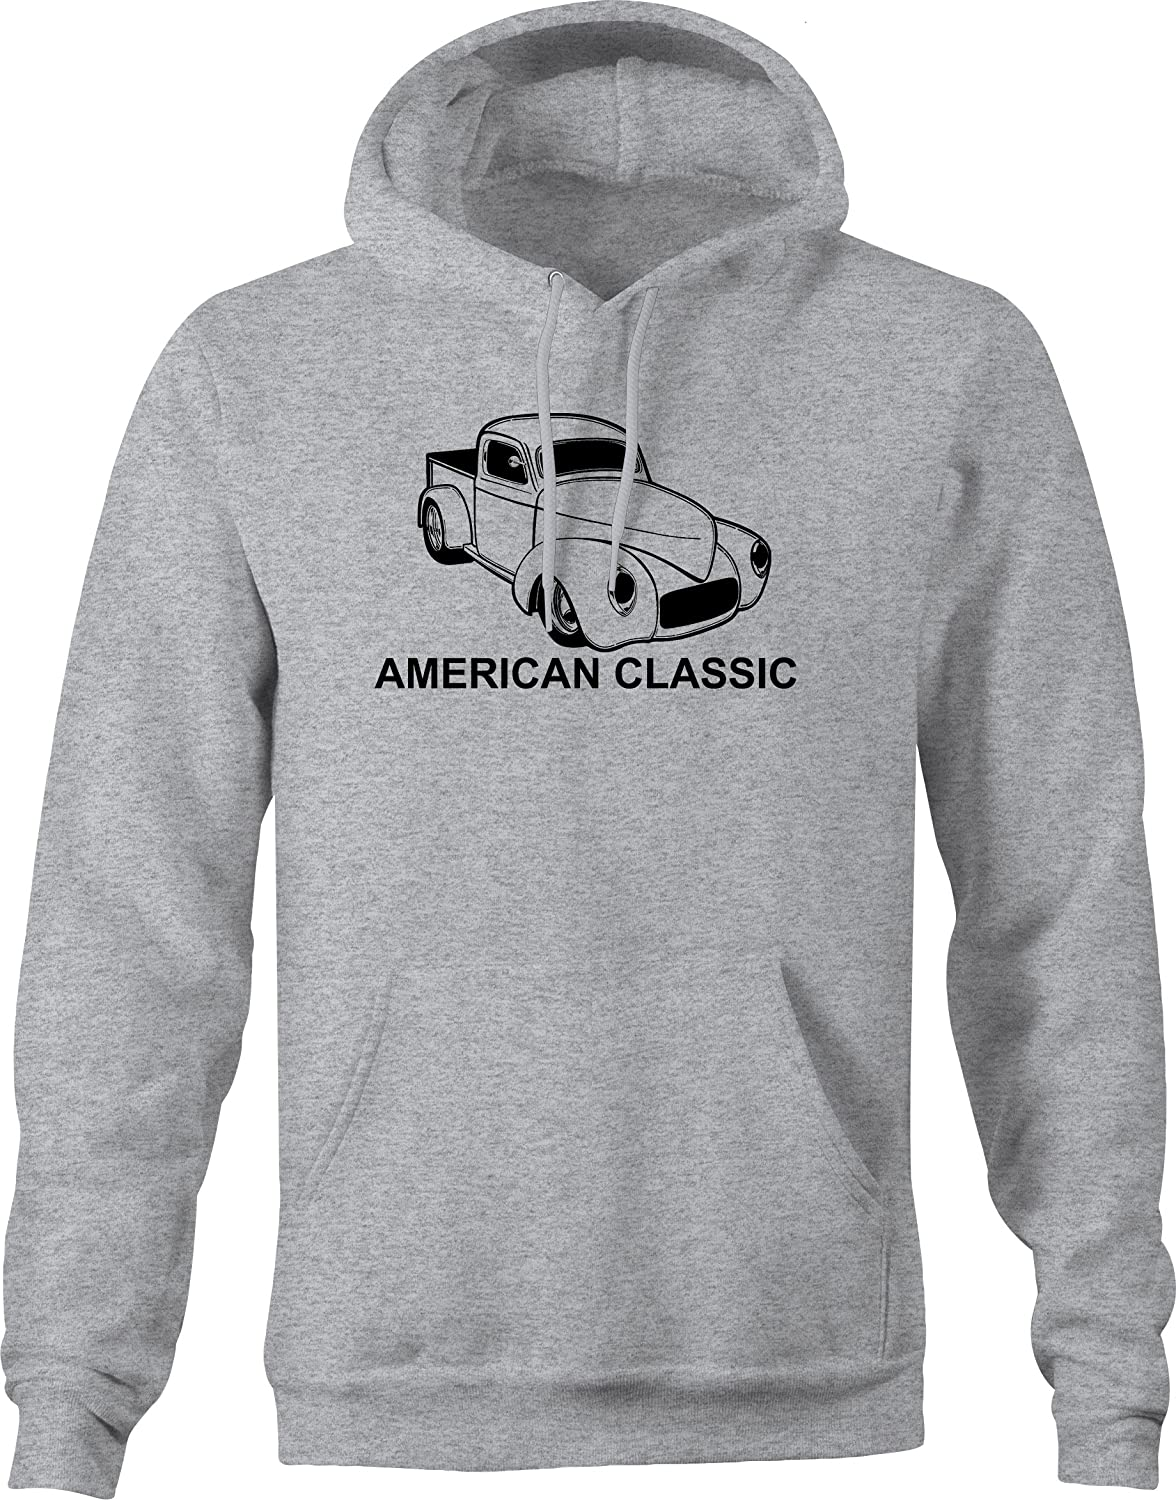 American Classic Pickup Truck Muscle Car 40s 50s Hooded Graphic Hoodie for Men